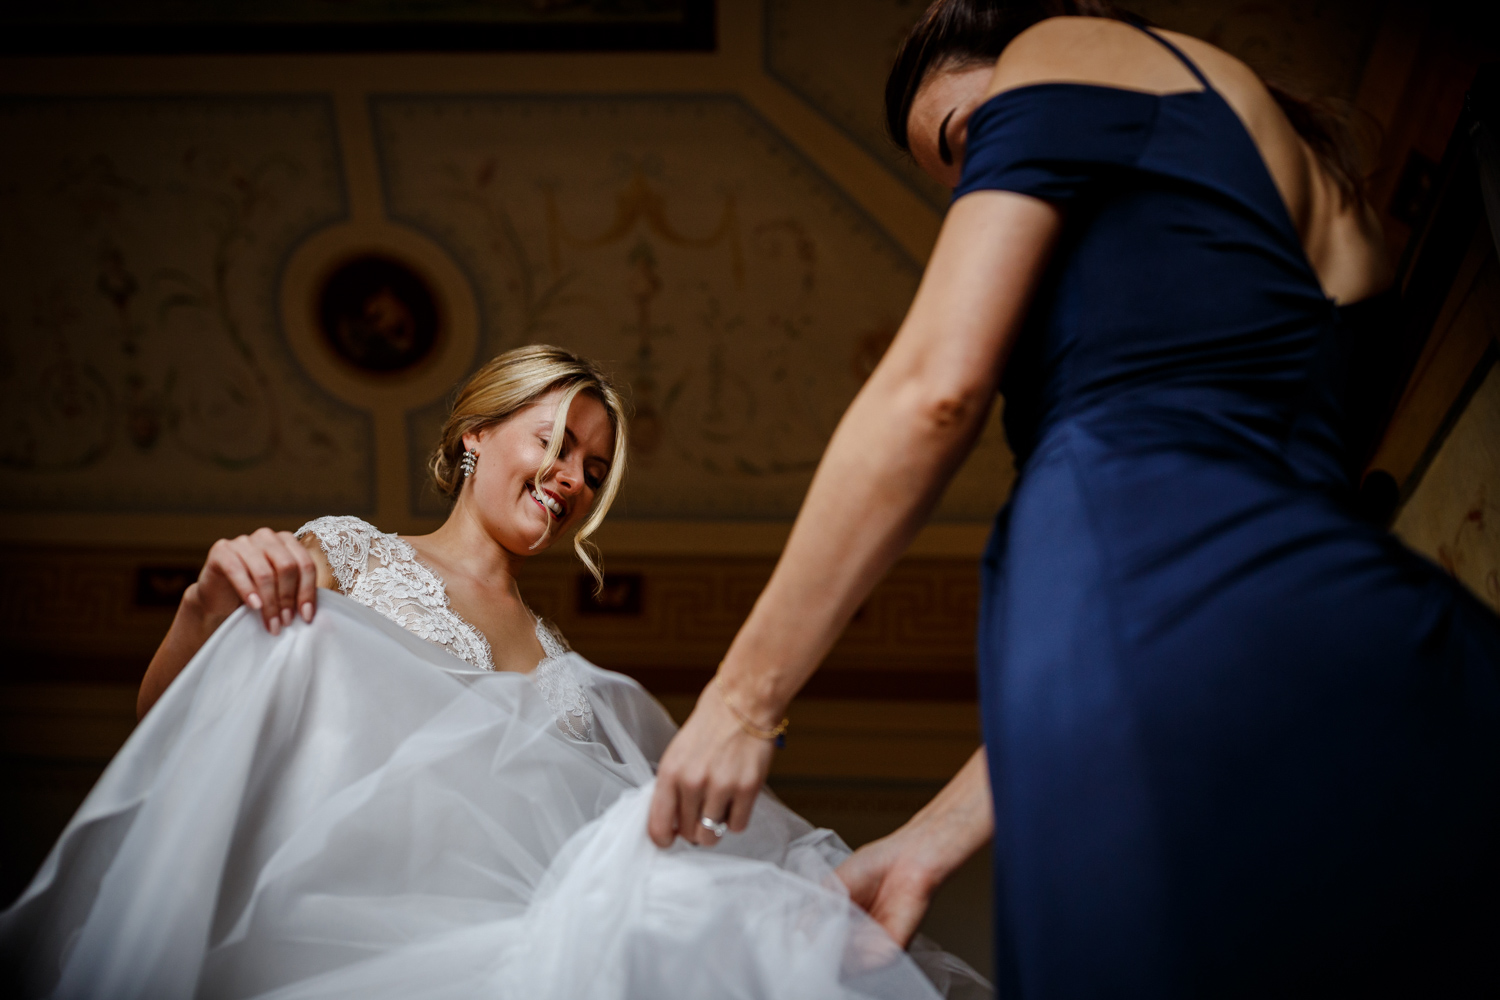 Putting on the wedding dress at Villa Catignano